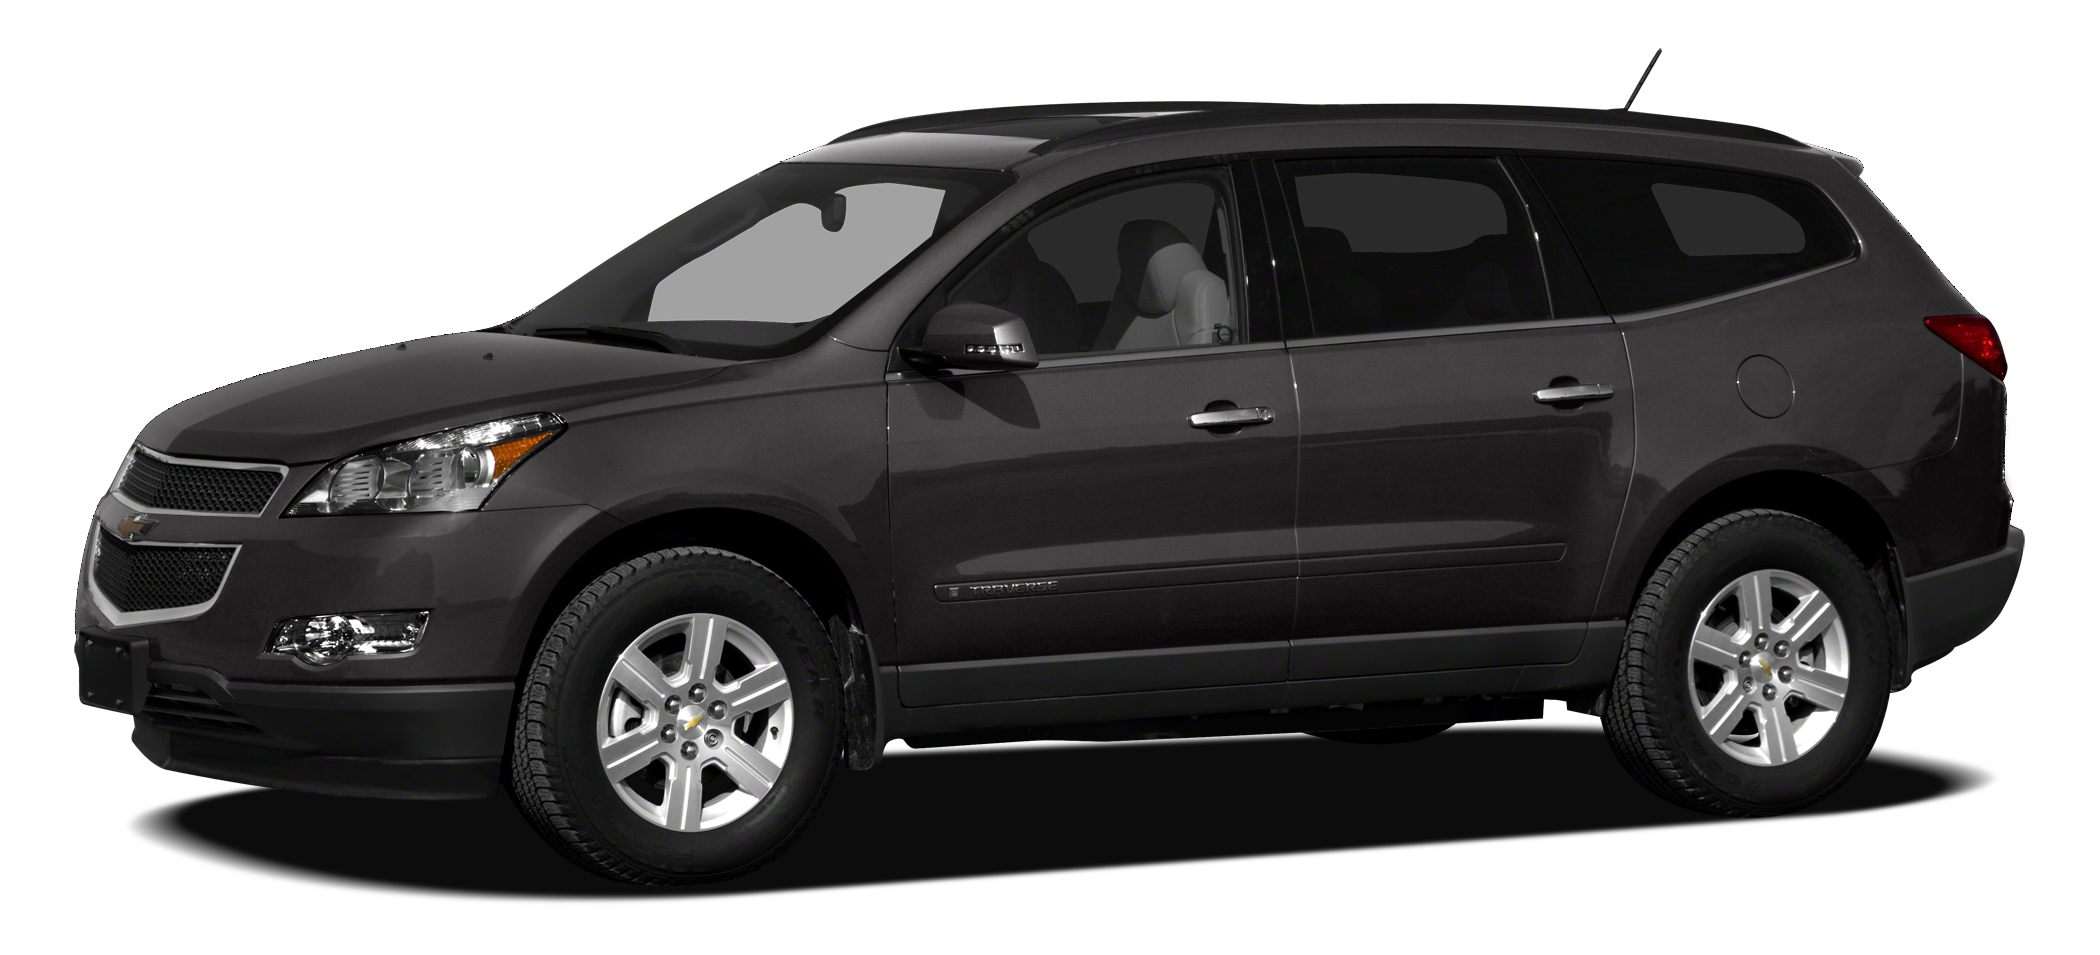 2012 Chevrolet Traverse 1LT ITS OUR 50TH ANNIVERSARY HERE AT MARTYS AND TO CELEBRATE WERE OFFERI